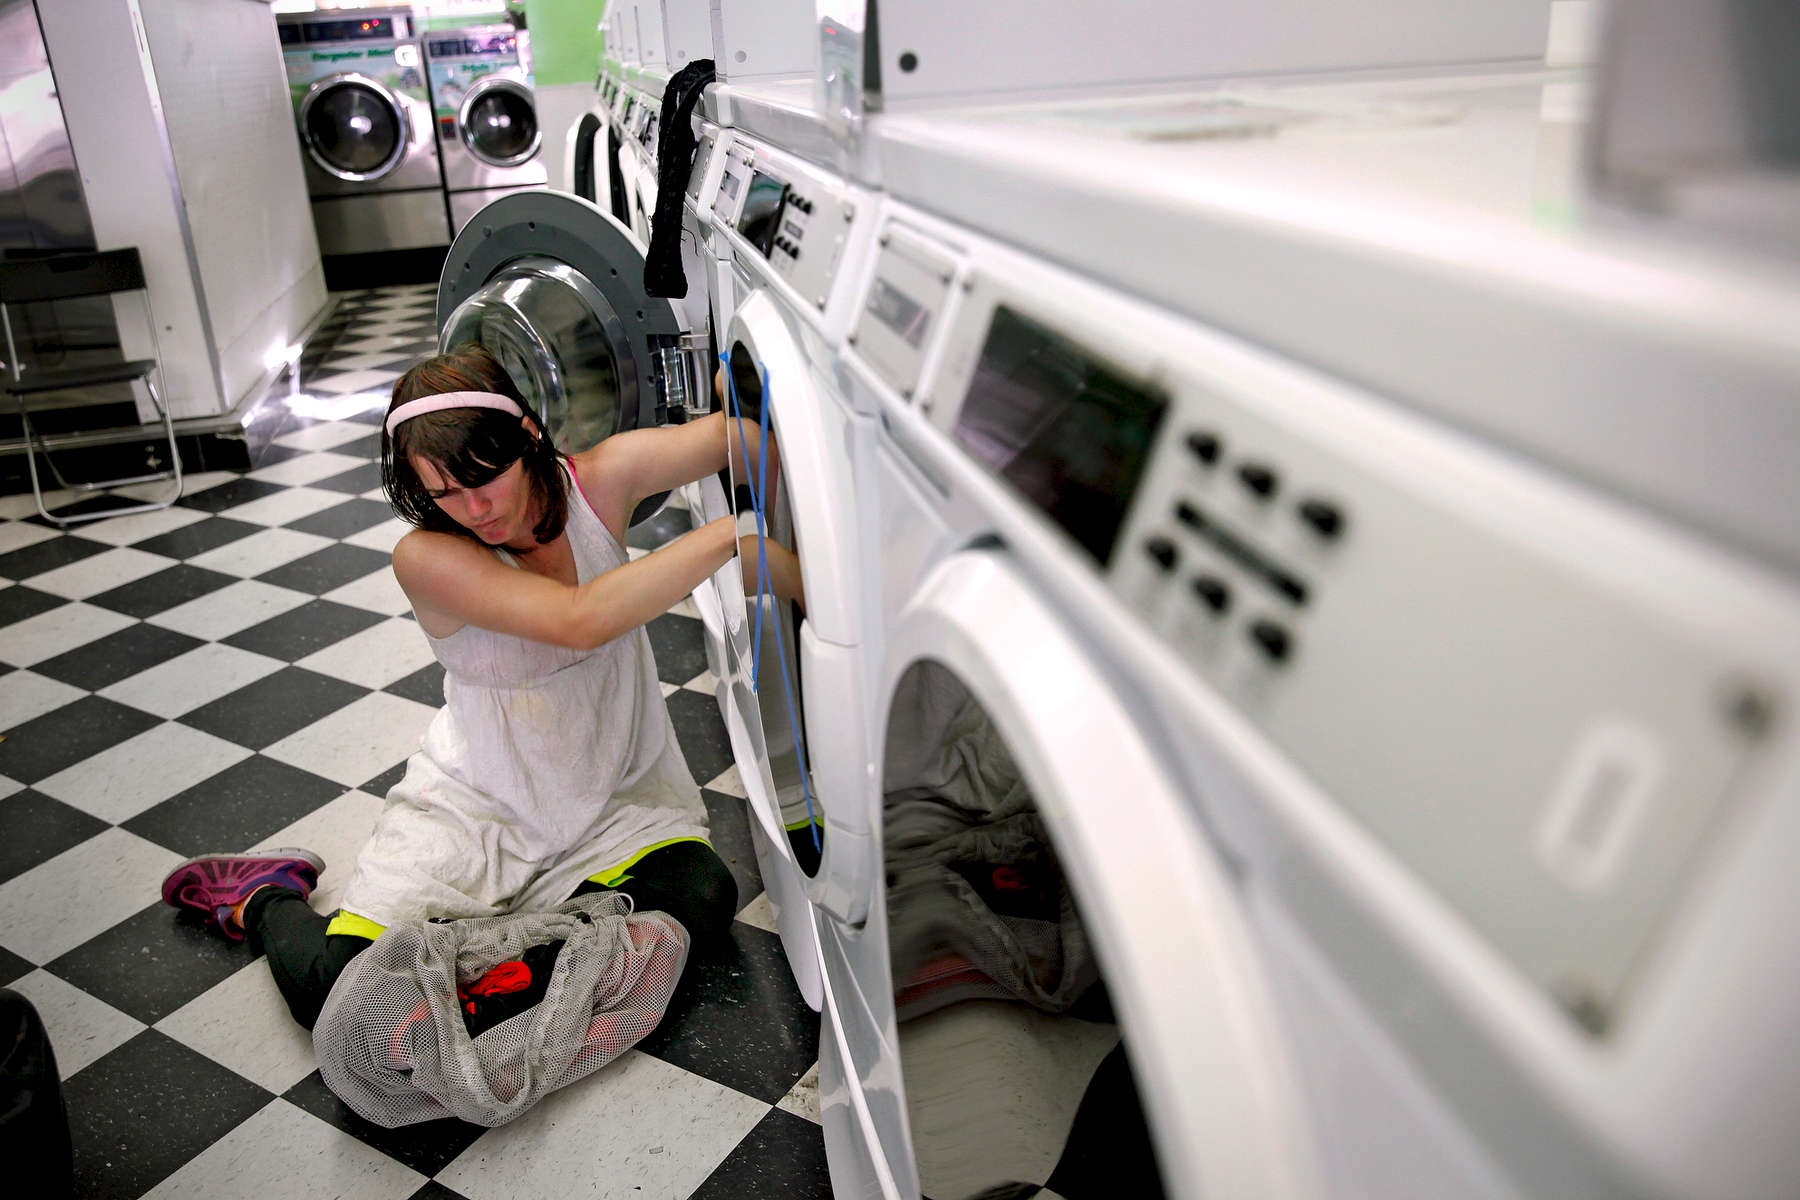 Isabella Morales-Black, 23, at a laundromat in San Francisco in October 2015. Isabella is part of a homeless street soccer team and makes a little money doing the team's laundry.